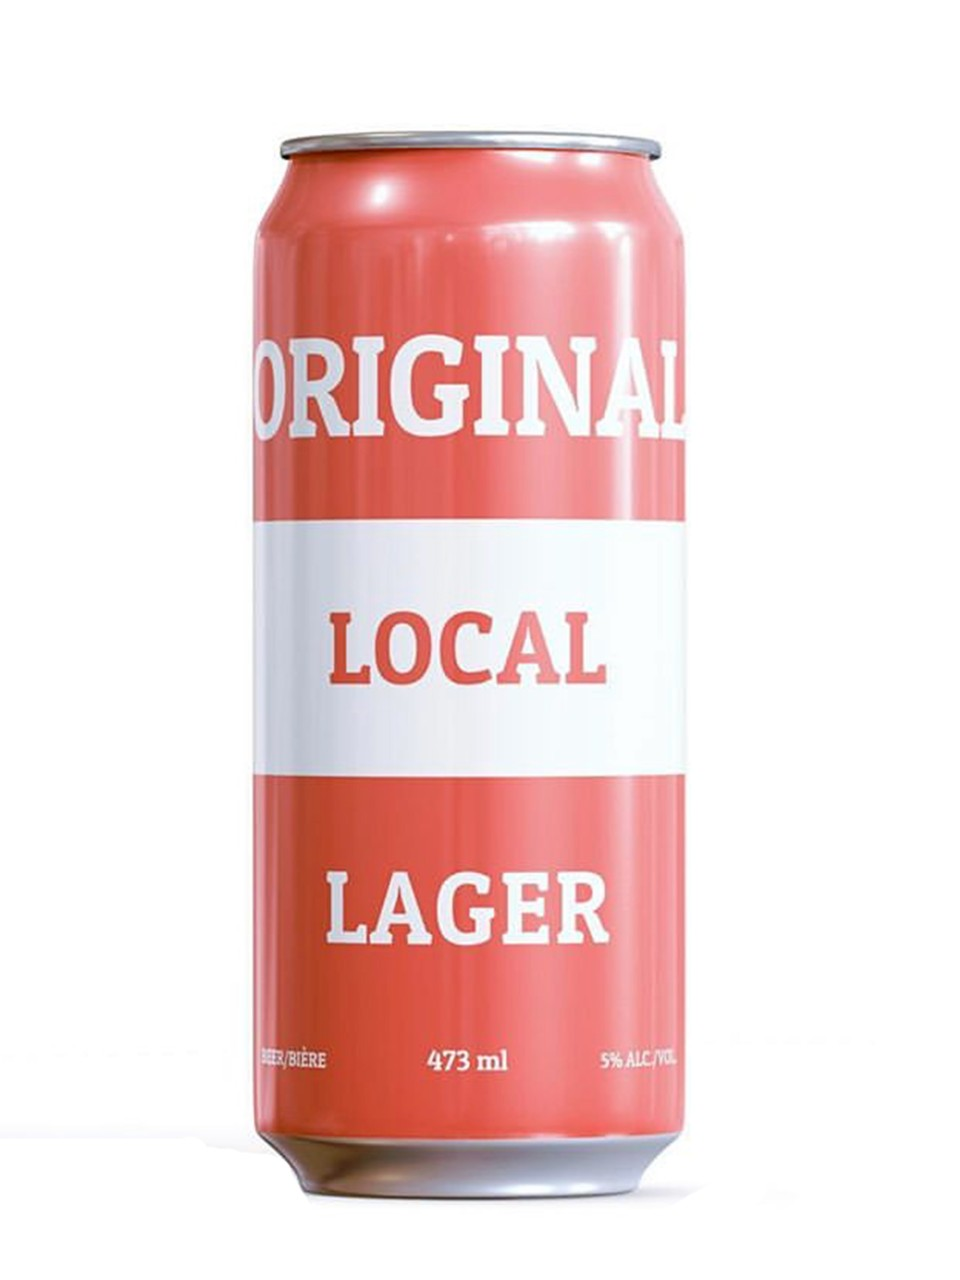 Image for Original Local Lager from LCBO